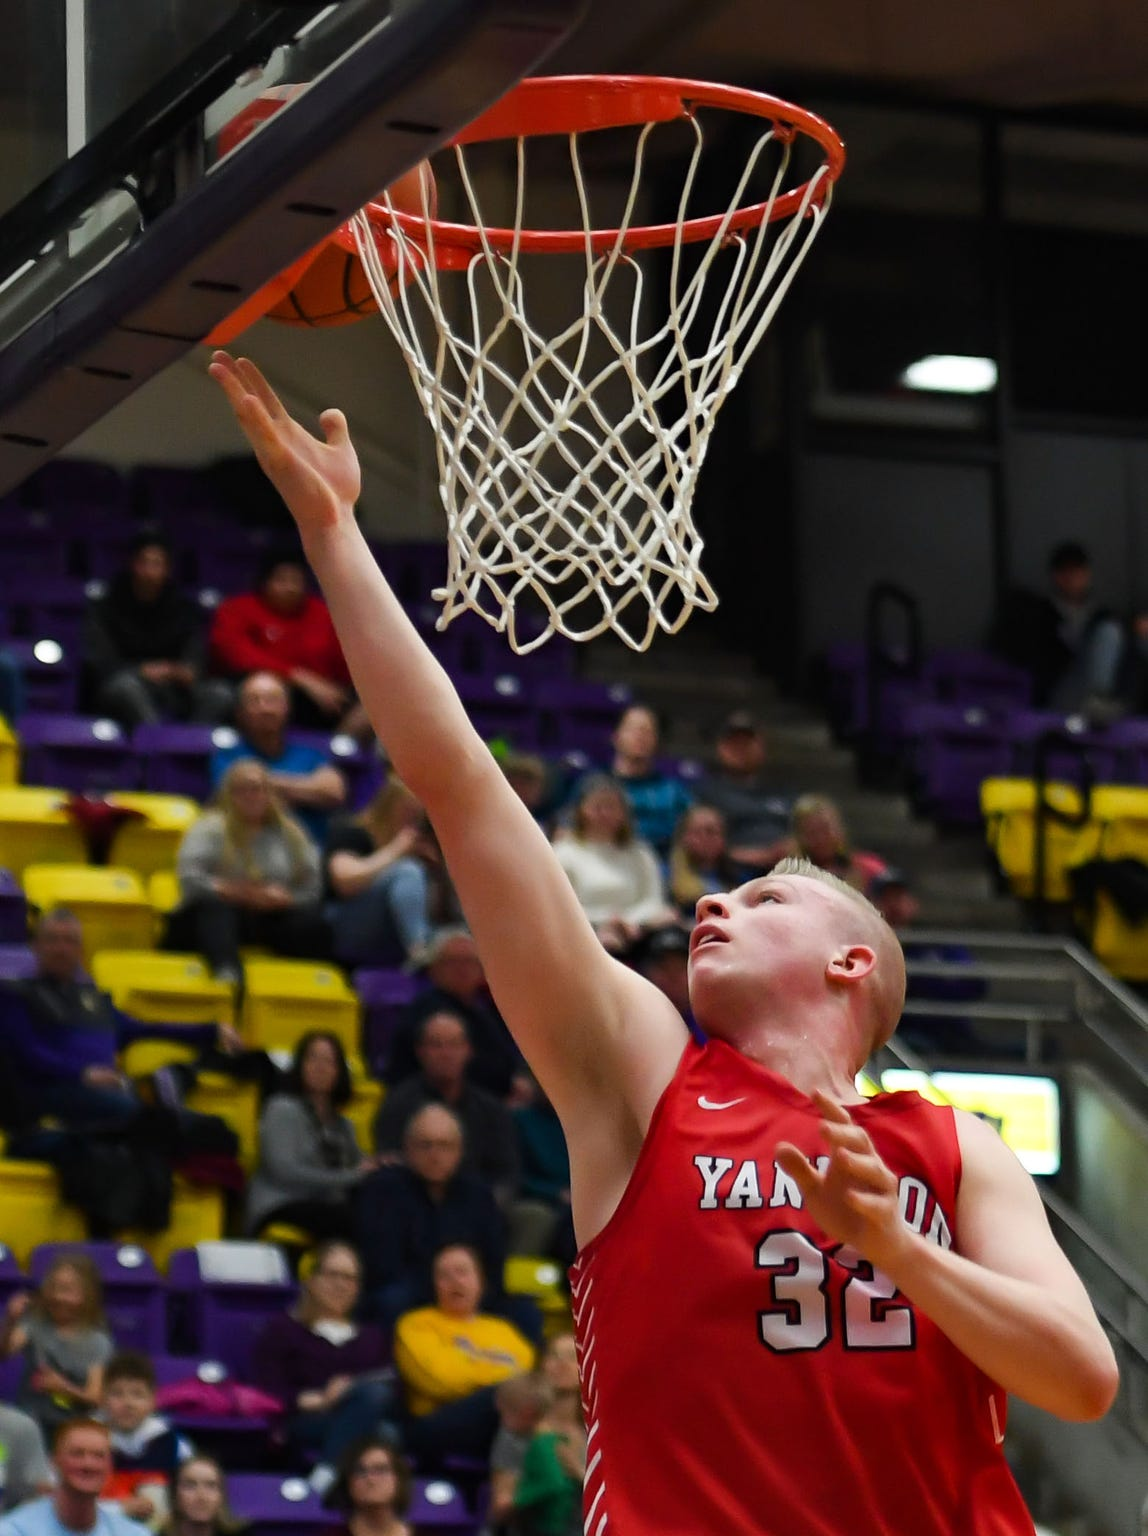 Yankton's Matthew Mors hits a layup to break Eric Kline's class AA all-time scoring record on Friday, Feb. 14, at the Watertown Civic Arena.